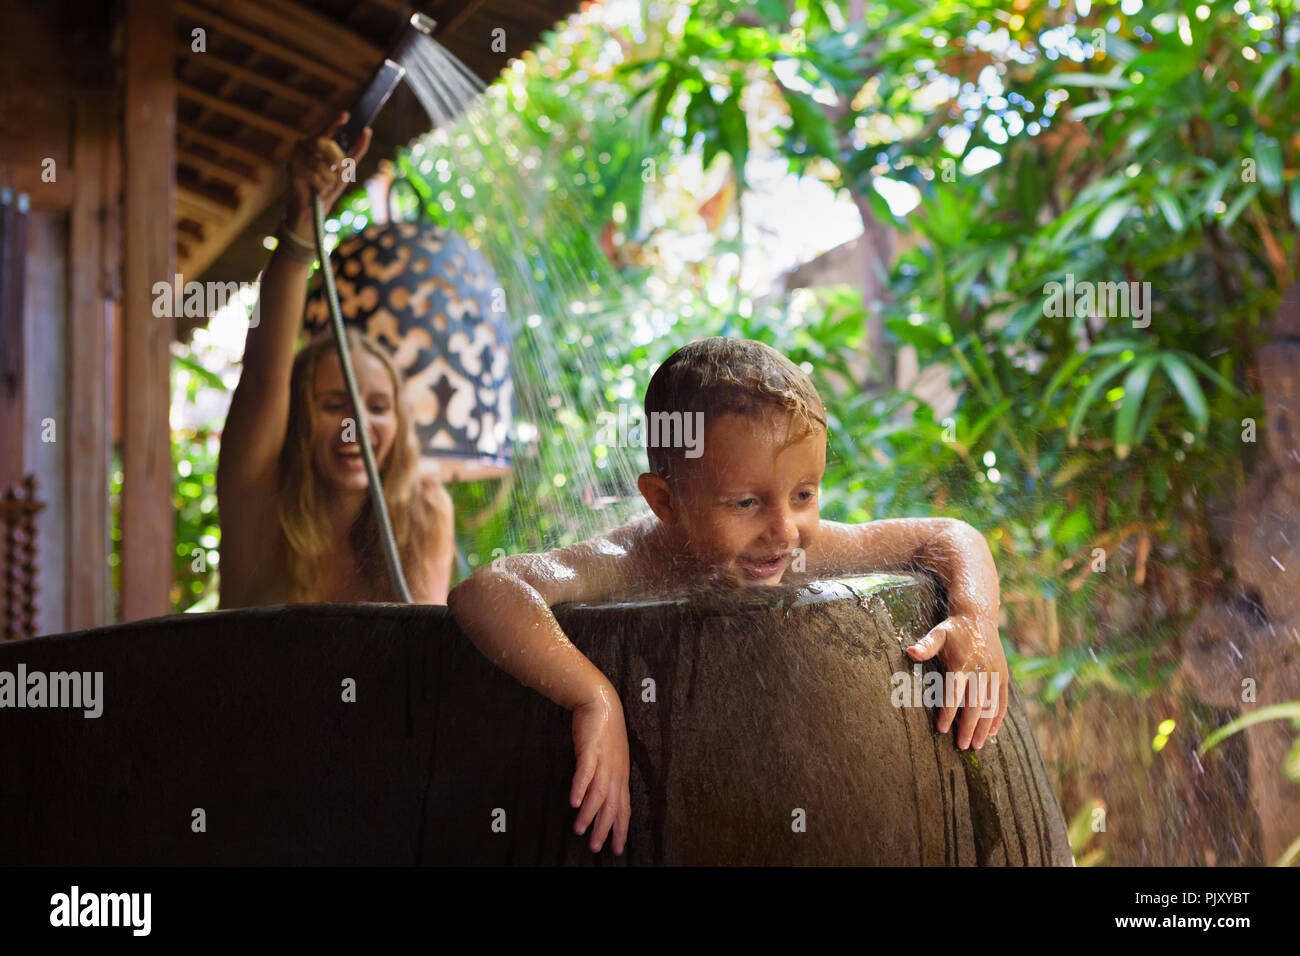 Happy baby son with mother have fun in bath. Playful woman spraying child from shower in outside bathroom on veranda with beautiful tropical garden. - Stock Image